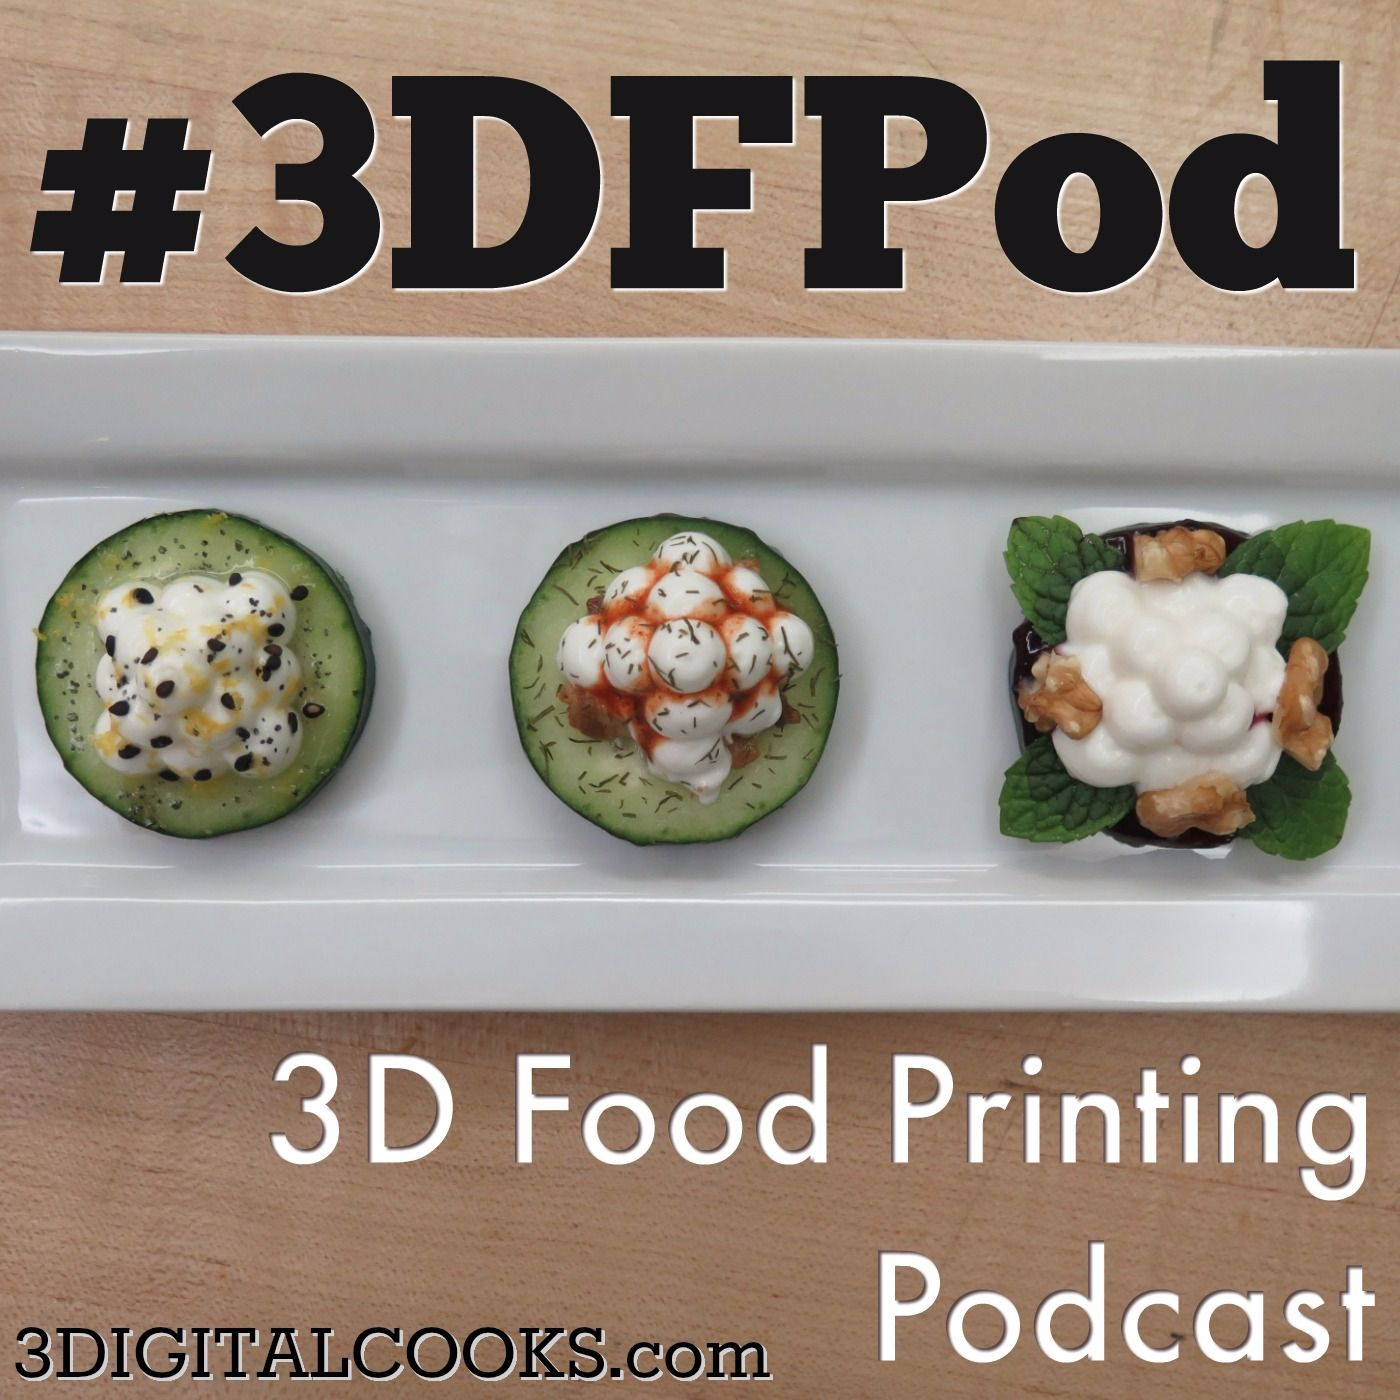 3D Food Printing Podcast